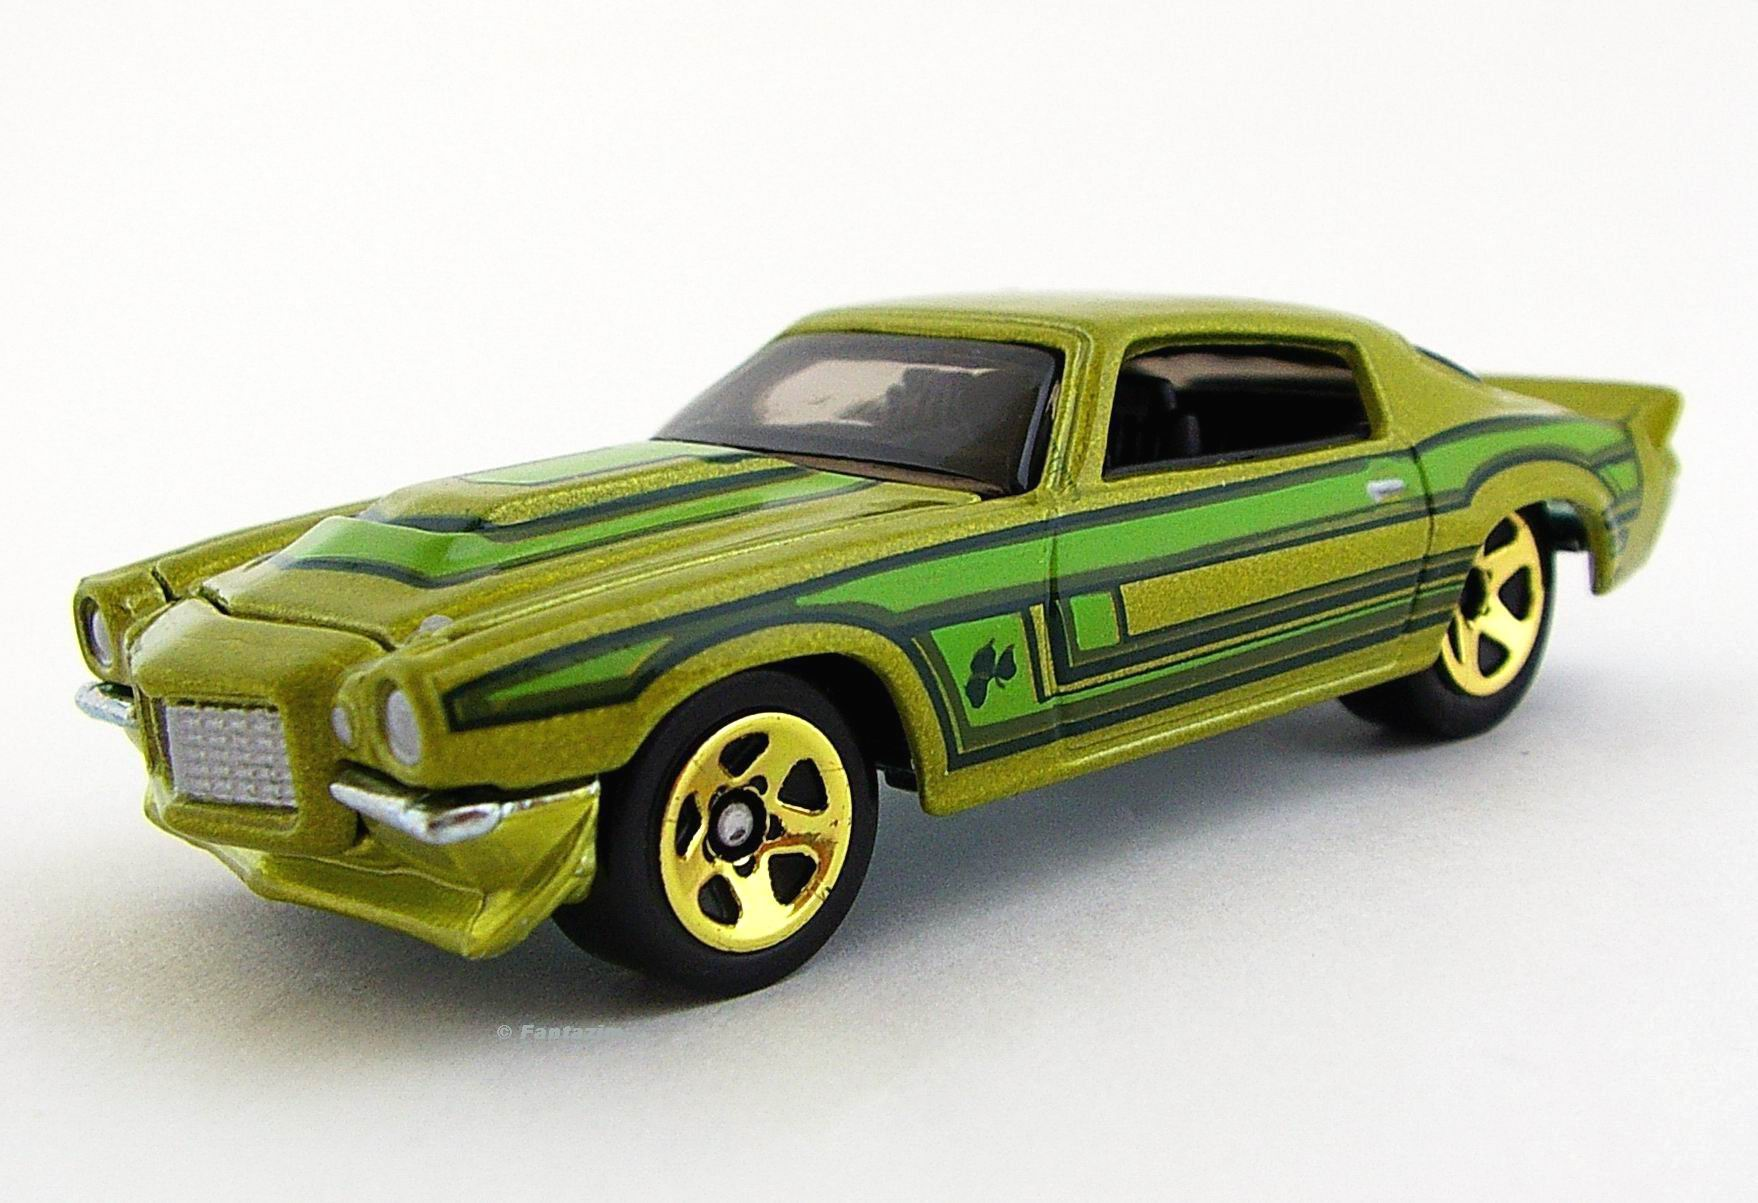 70 Camaro RS | Hot Wheels Wiki | FANDOM powered by Wikia